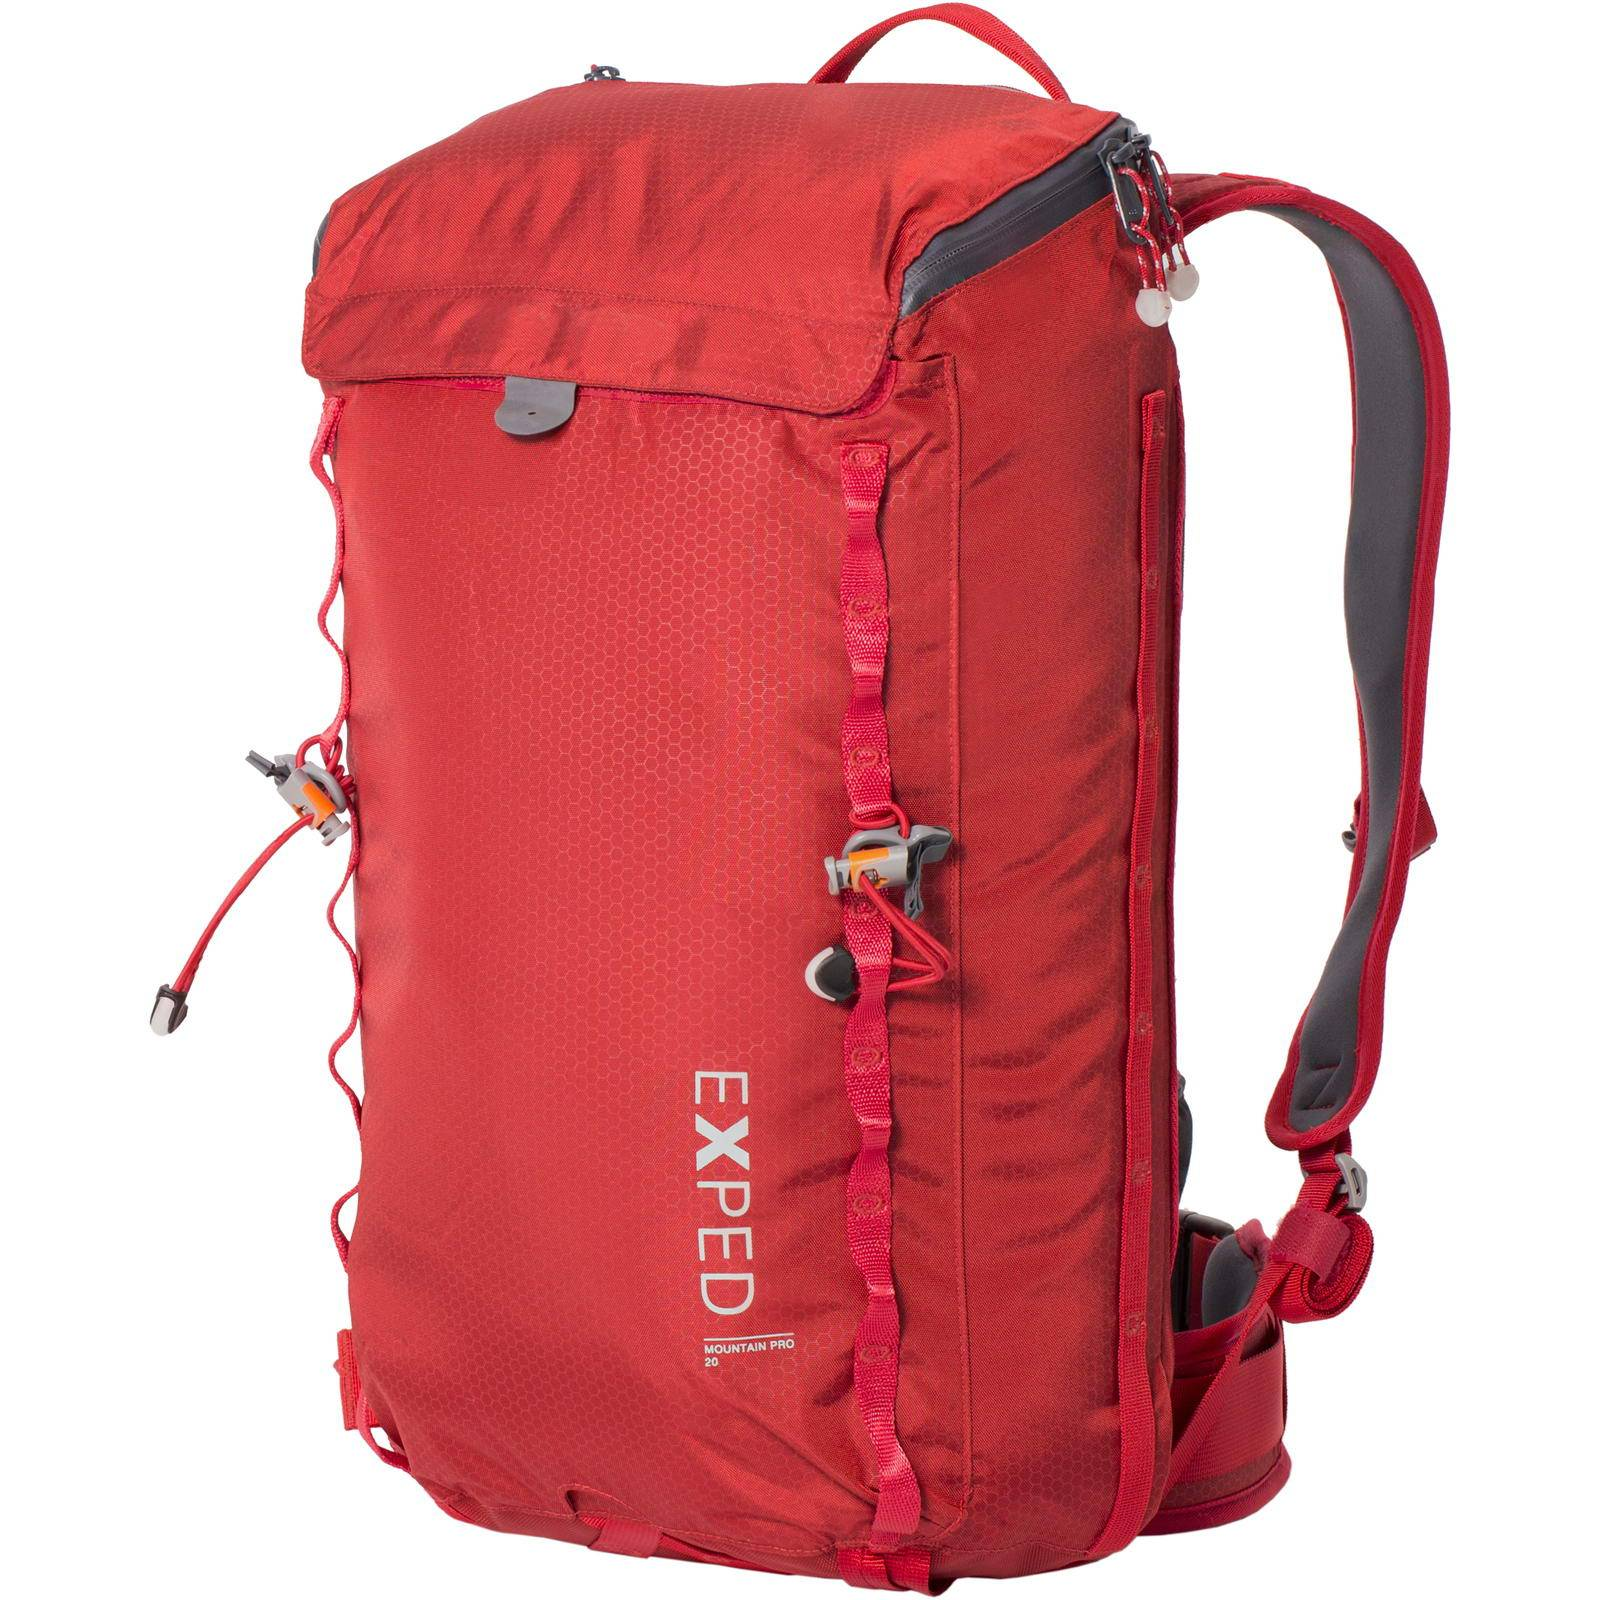 EXPED Mountain Pro 20 - Rucksack ruby red